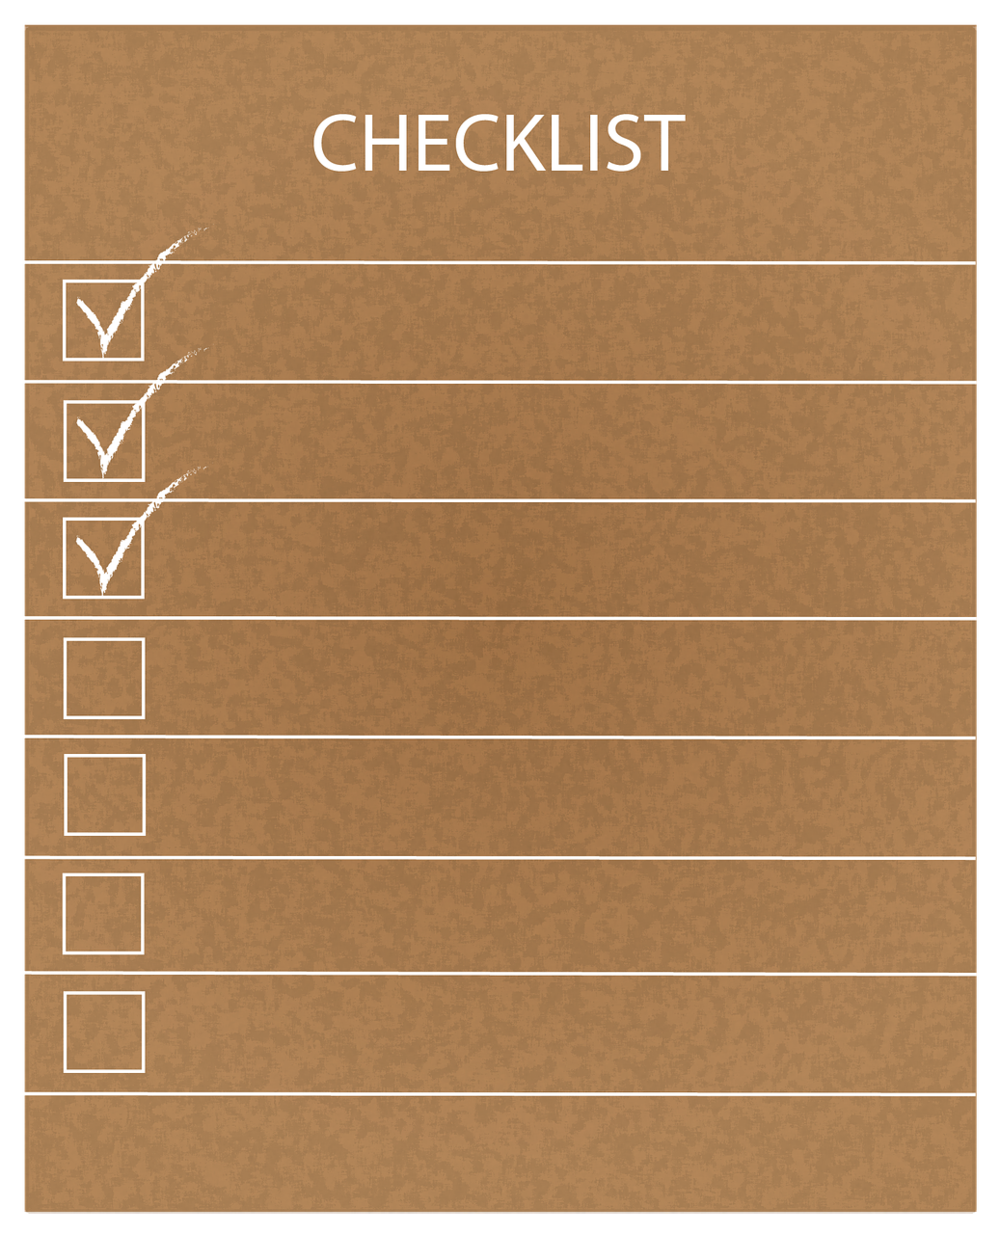 checklist-1268087_1280.png